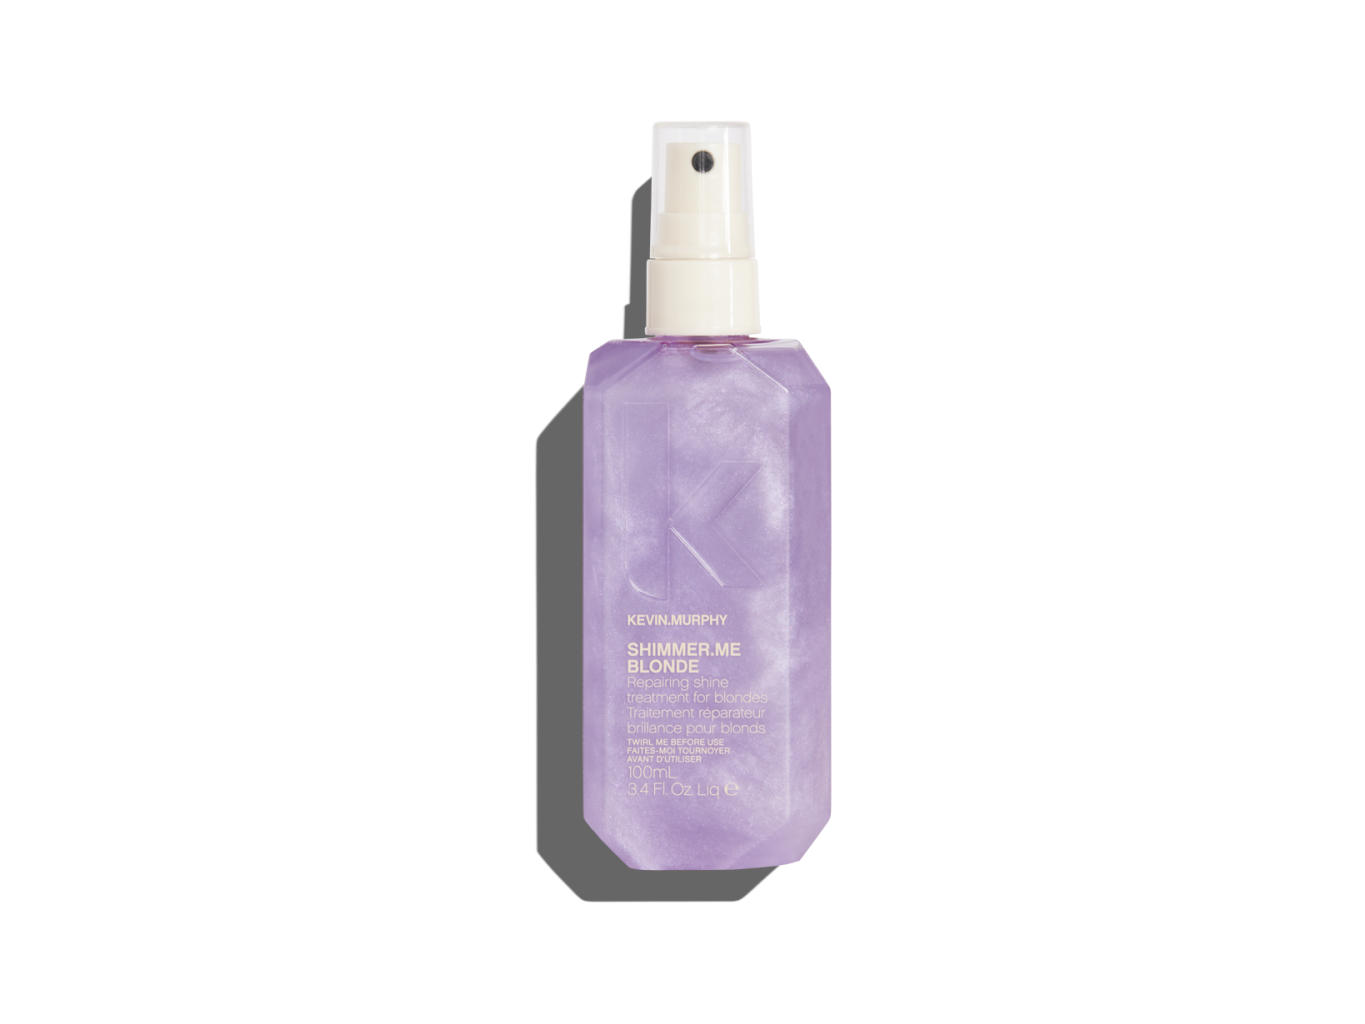 Arma Beauty - Kevin Murphy - SHIMMER.ME BLONDE